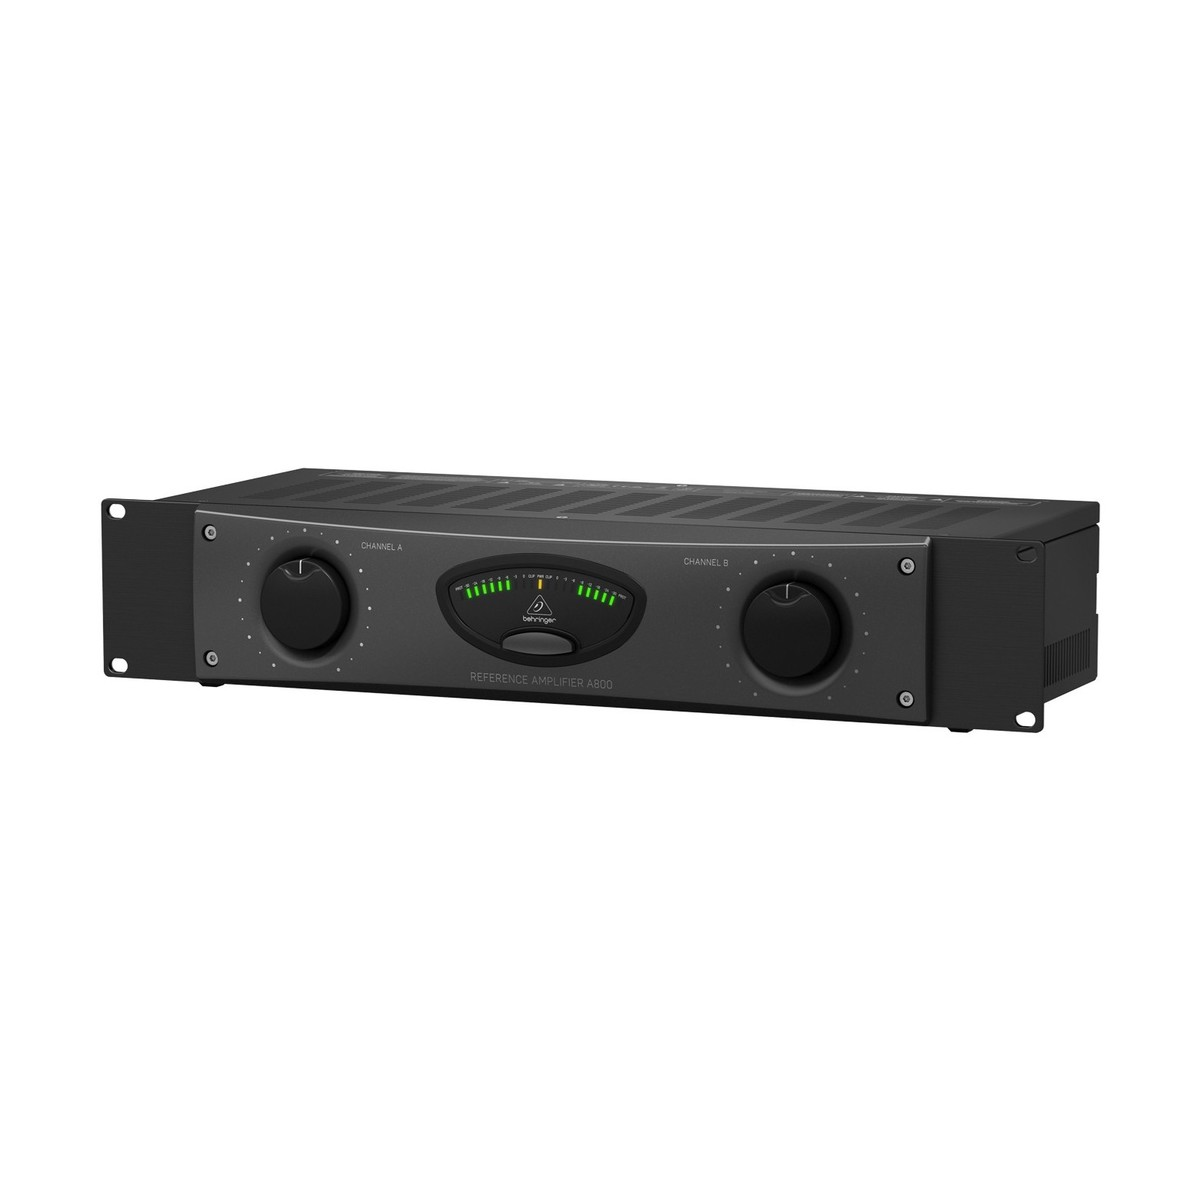 Disc Behringer A800 800w Reference Power Amplifier At Gear4musiccom Compatible With Tv Audio